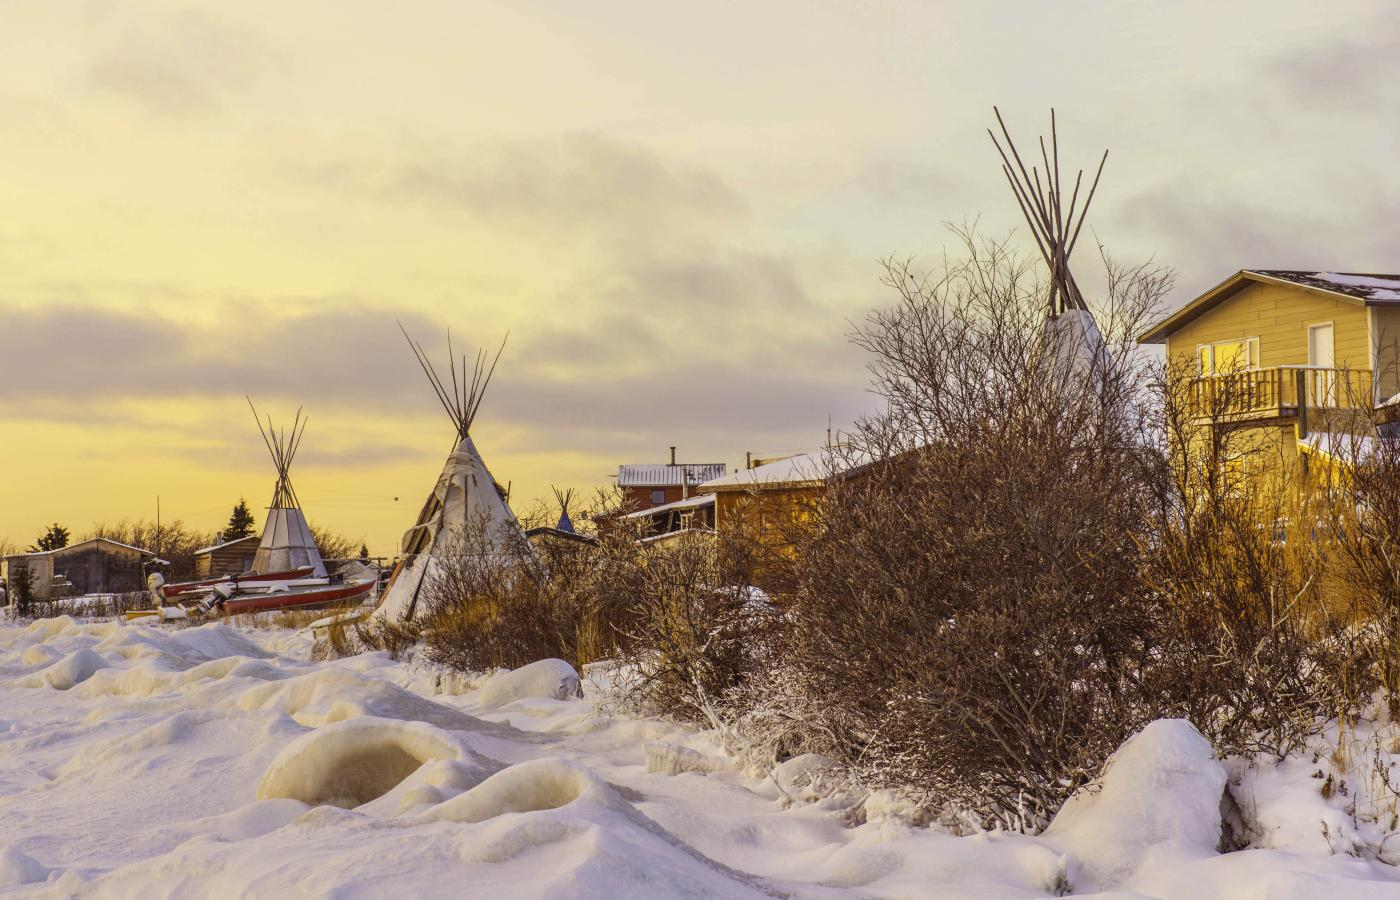 Dene community with houses and teepees in the winter under the sunset